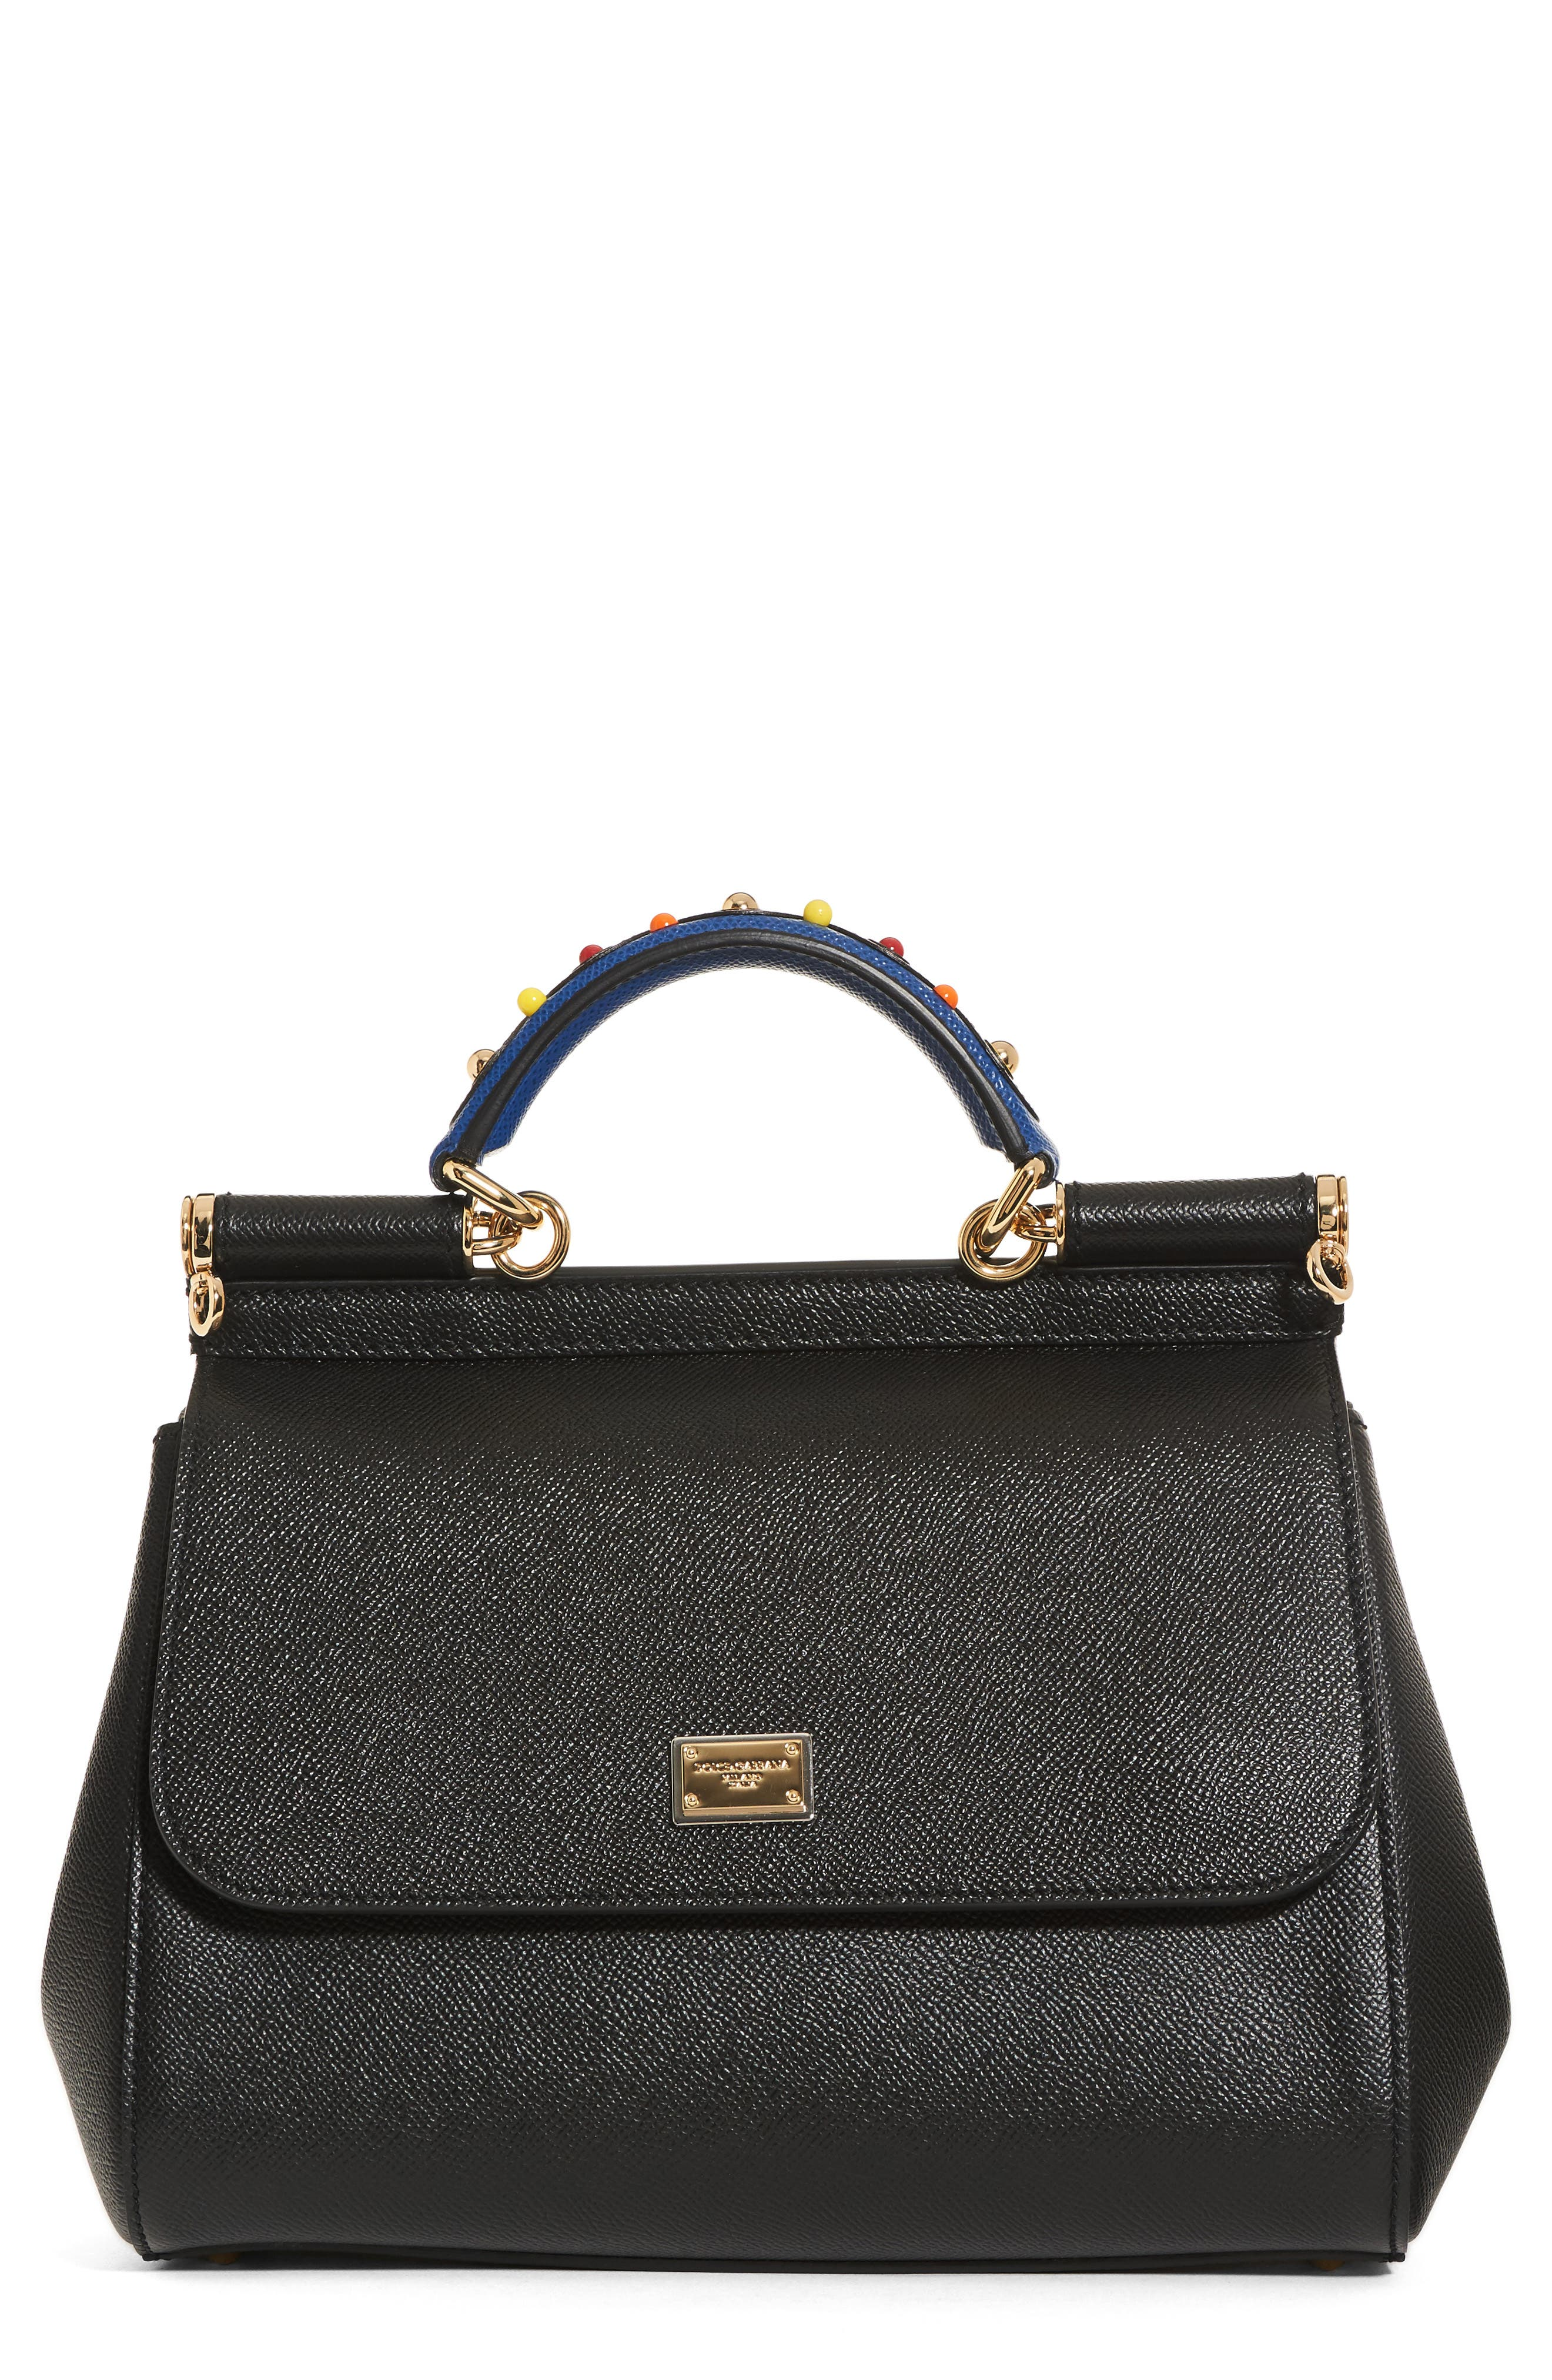 Dolce&Gabbana Small Miss Sicily Embellished Top Handle Leather Satchel